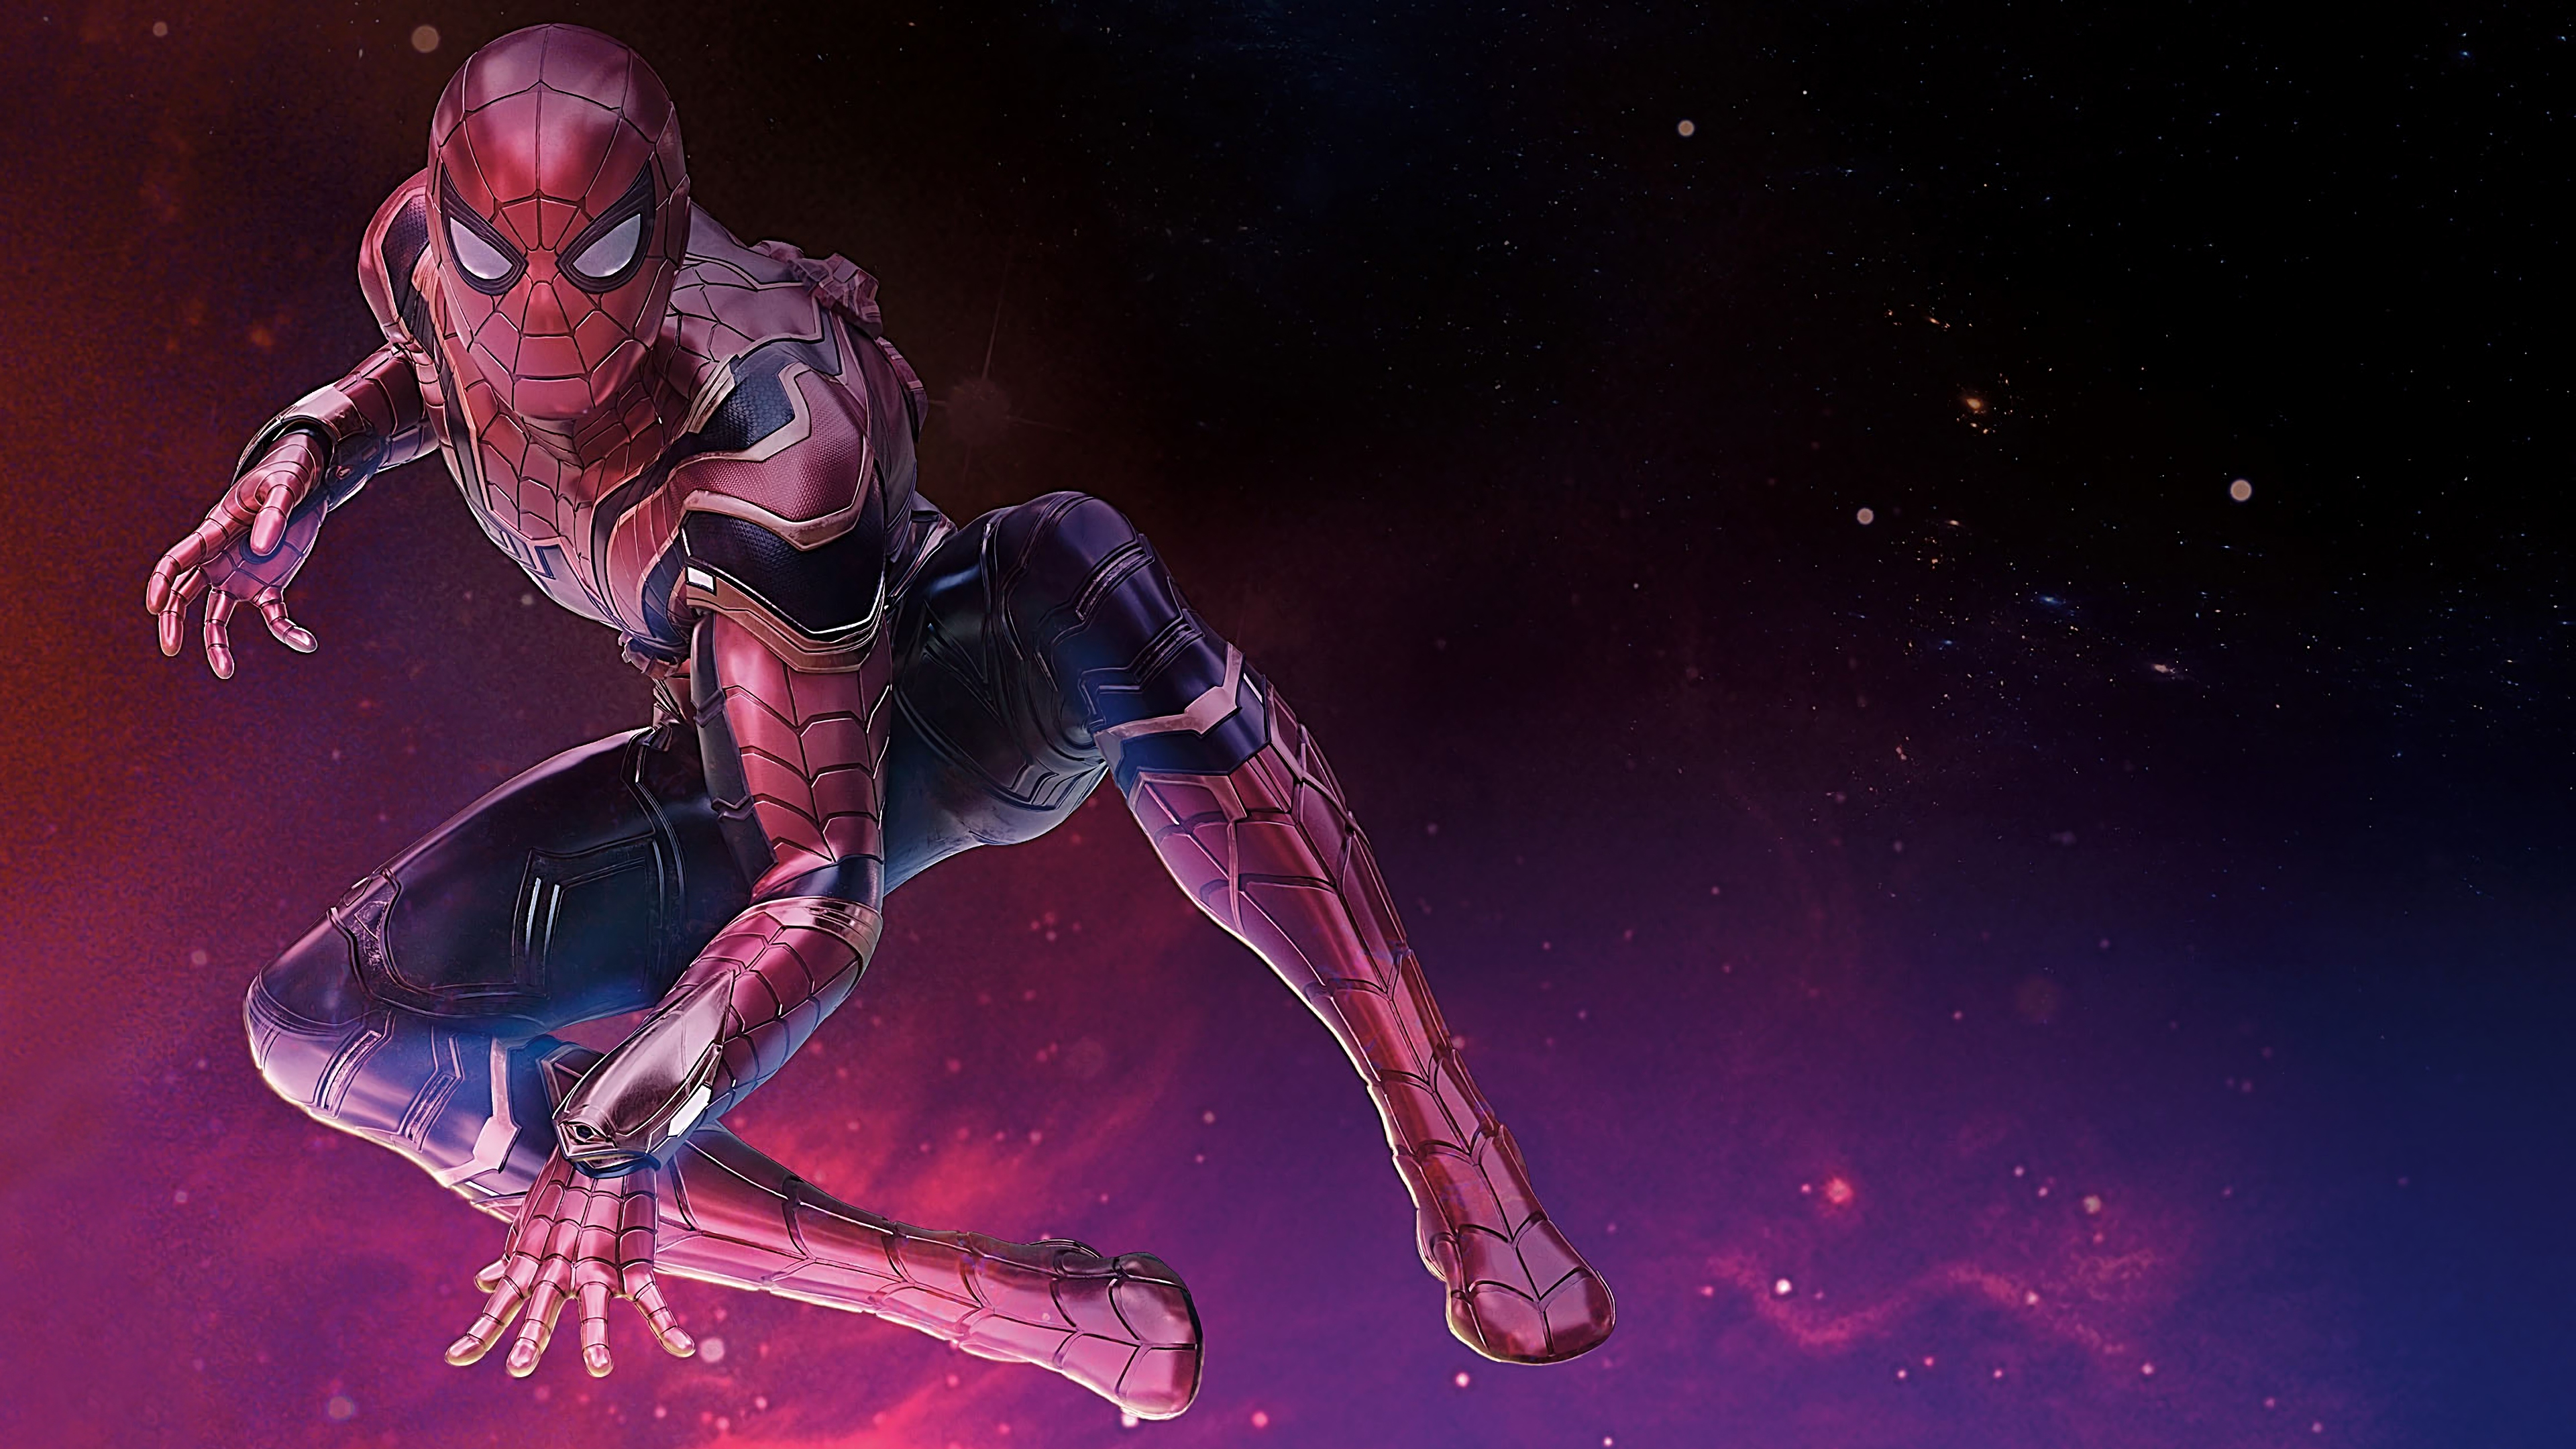 Iron Spider Wallpaper Avengers Infinity War By Williansantos26